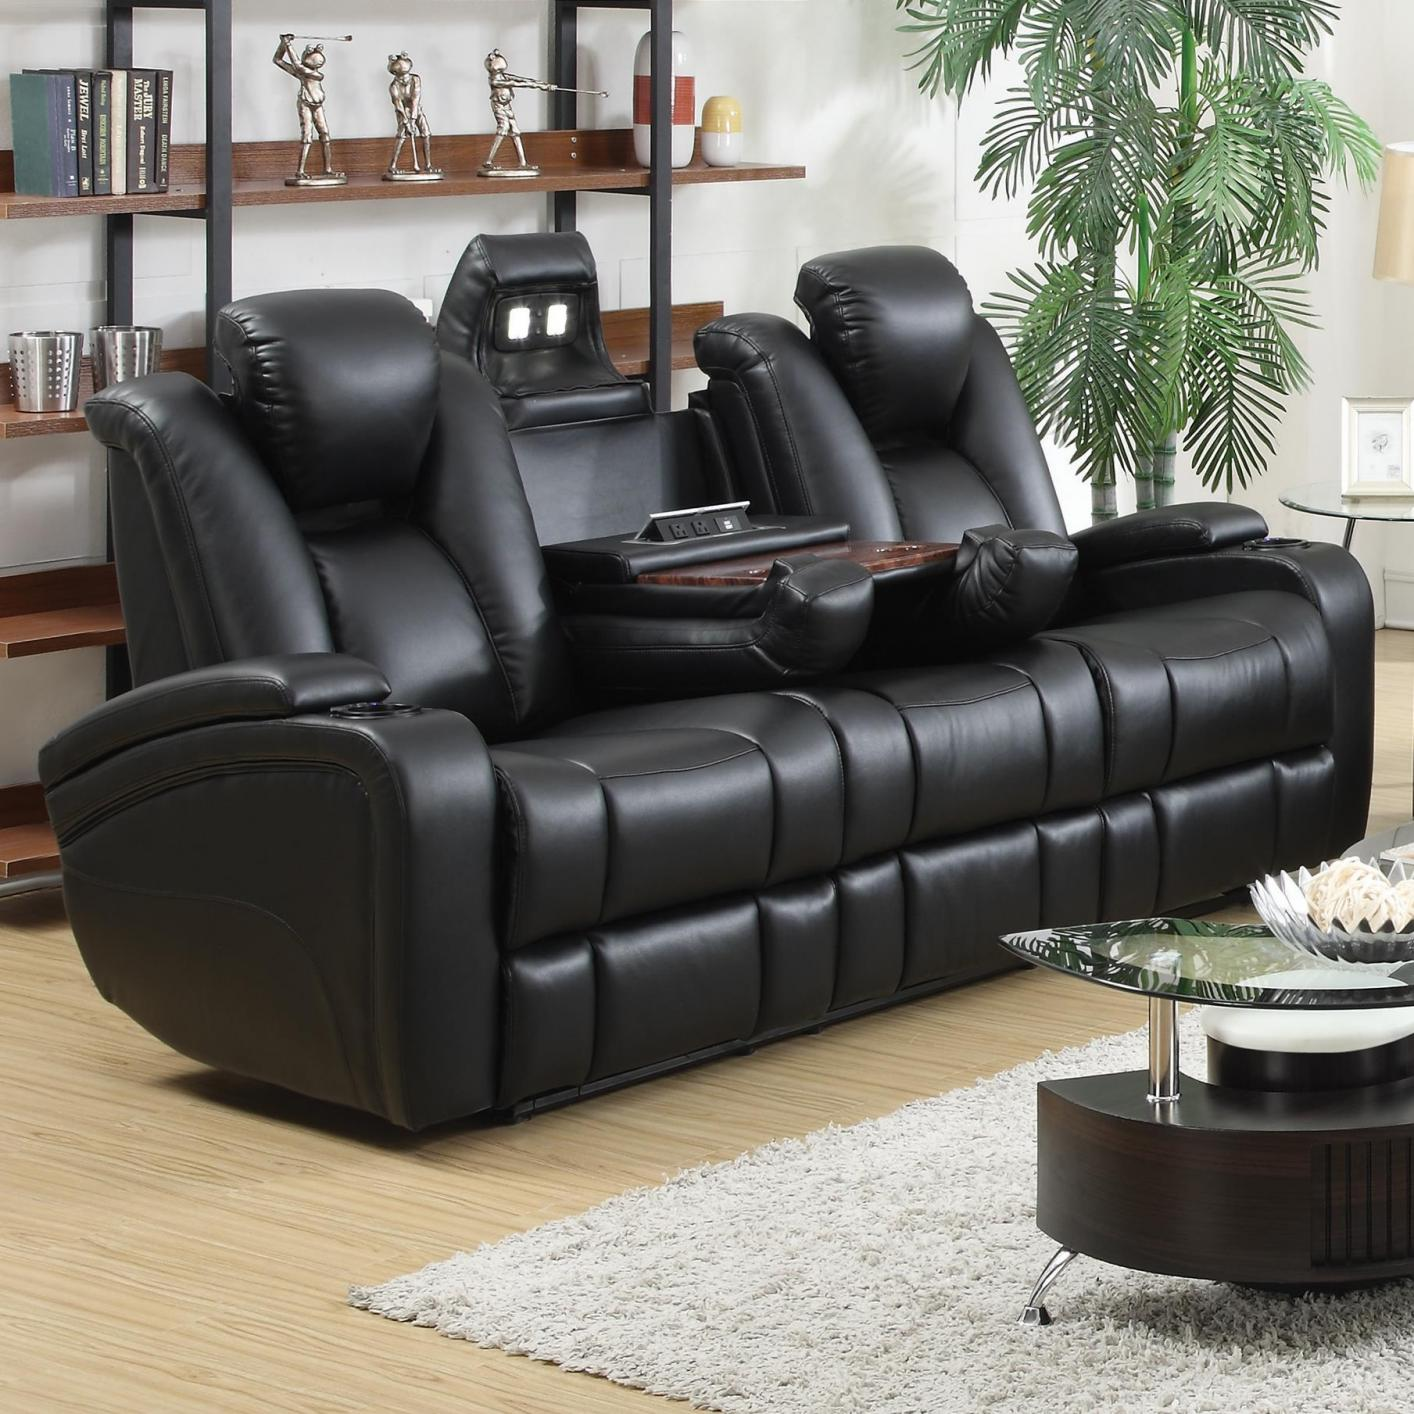 Black Leather Power Reclining Sofa StealASofa Furniture Outlet